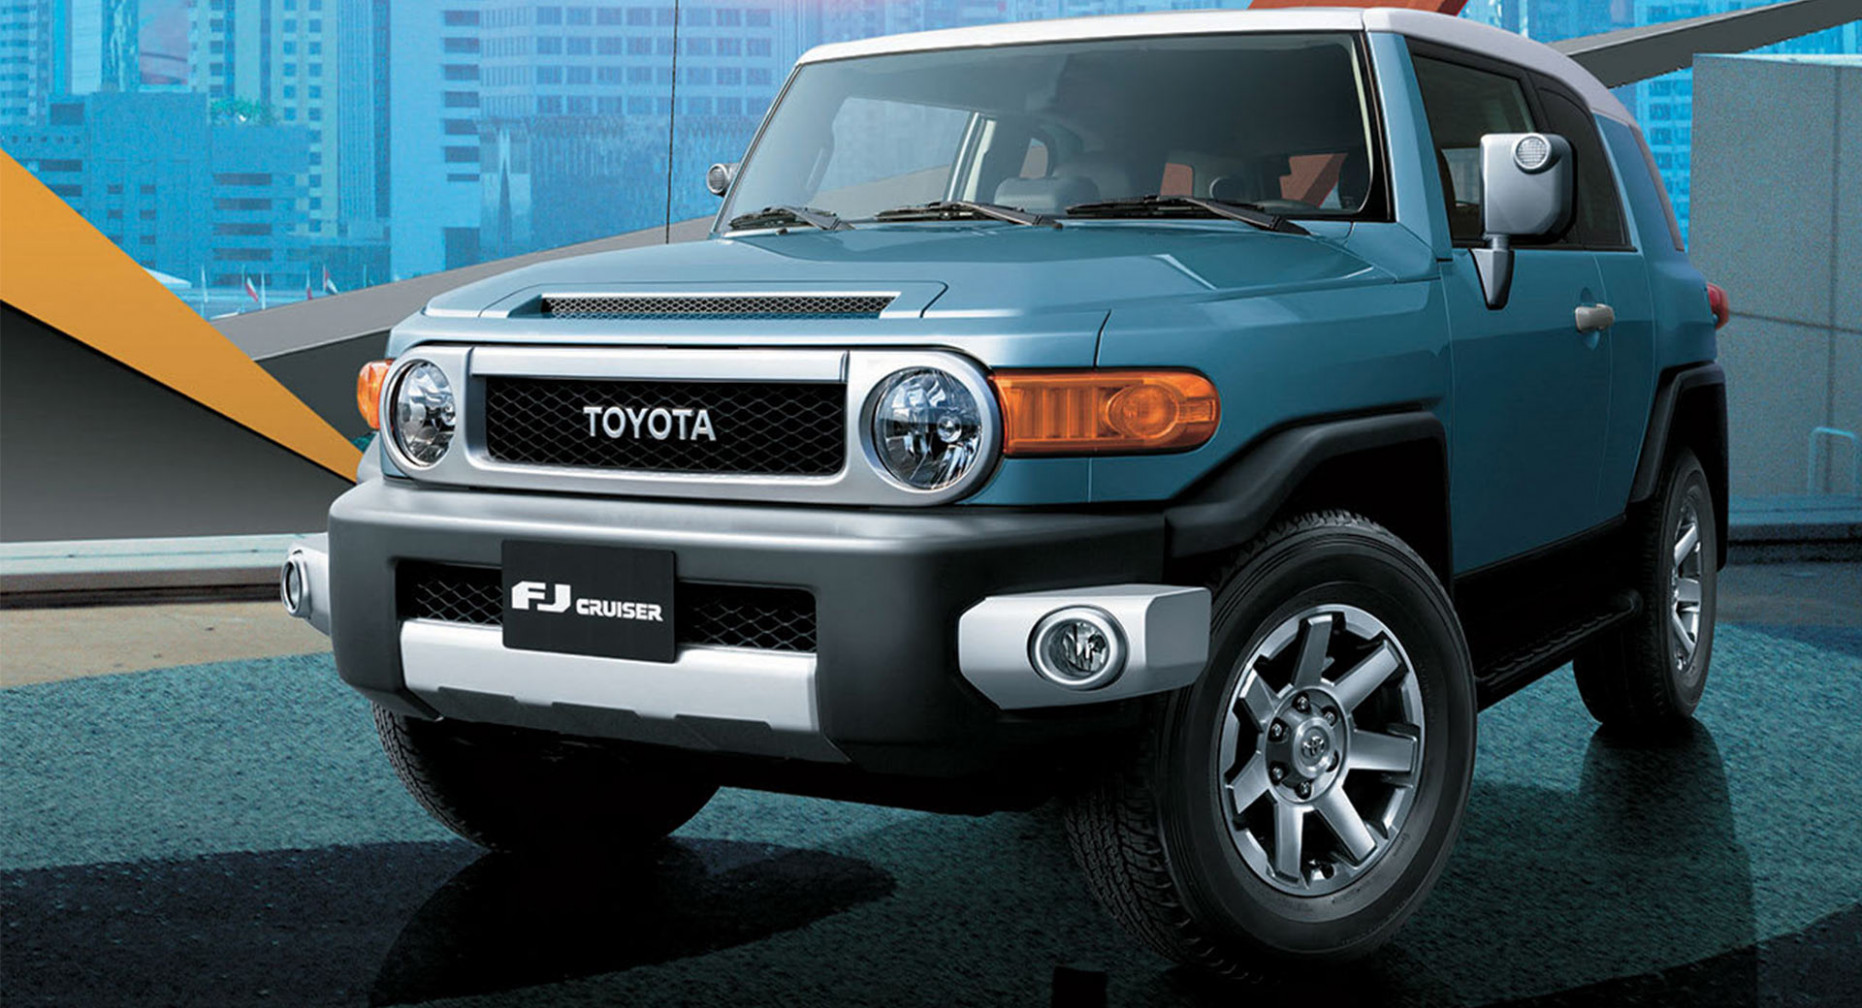 Exterior and Interior 2022 Fj Cruiser